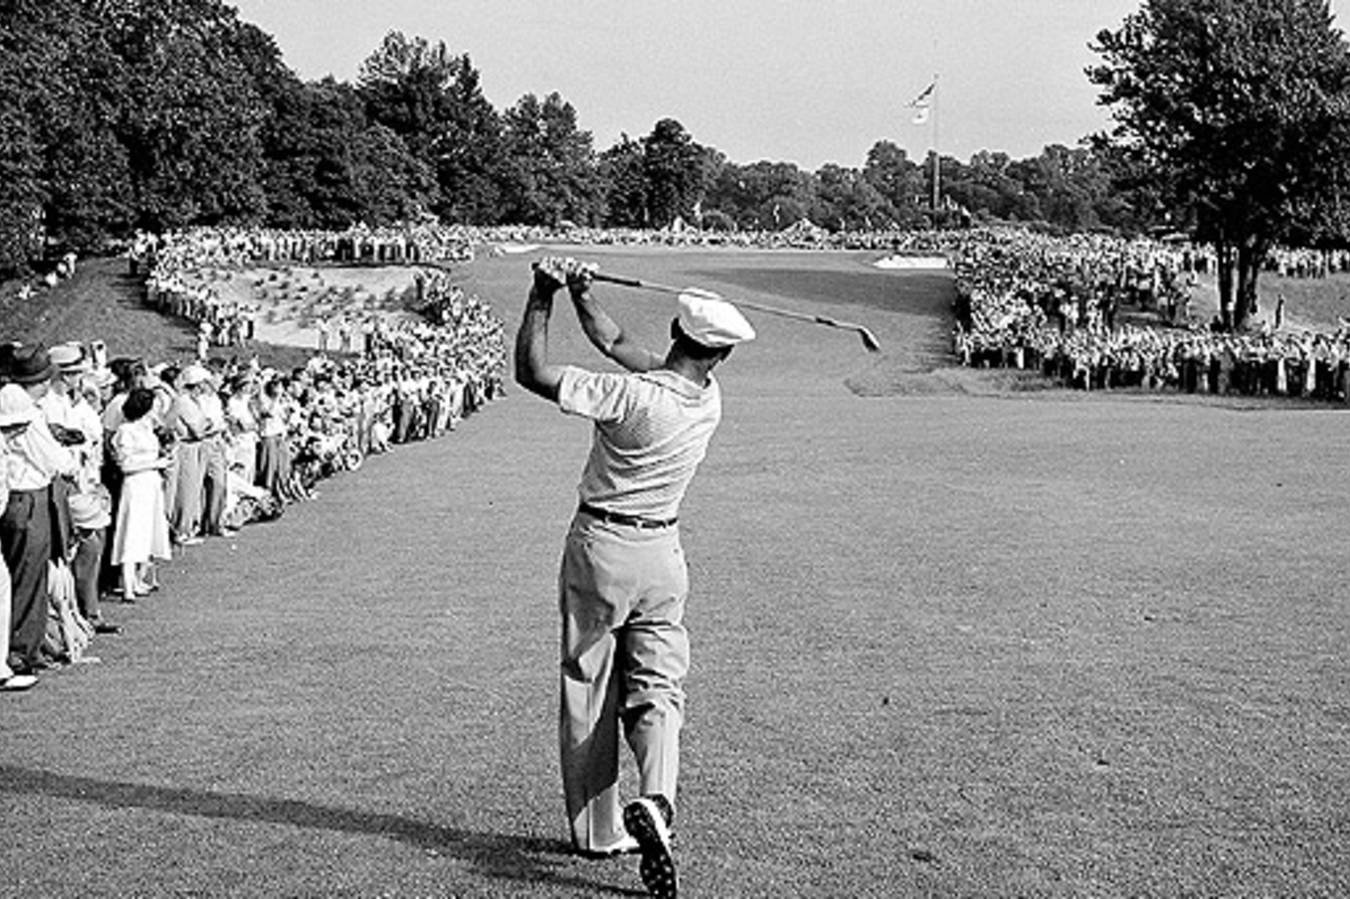 Perhaps one of the most famous photographs in golf: Ben Hogan's 1-iron (or was it a 2-iron?) on Merion's 18th fairway during the 1950 U.S. Open.